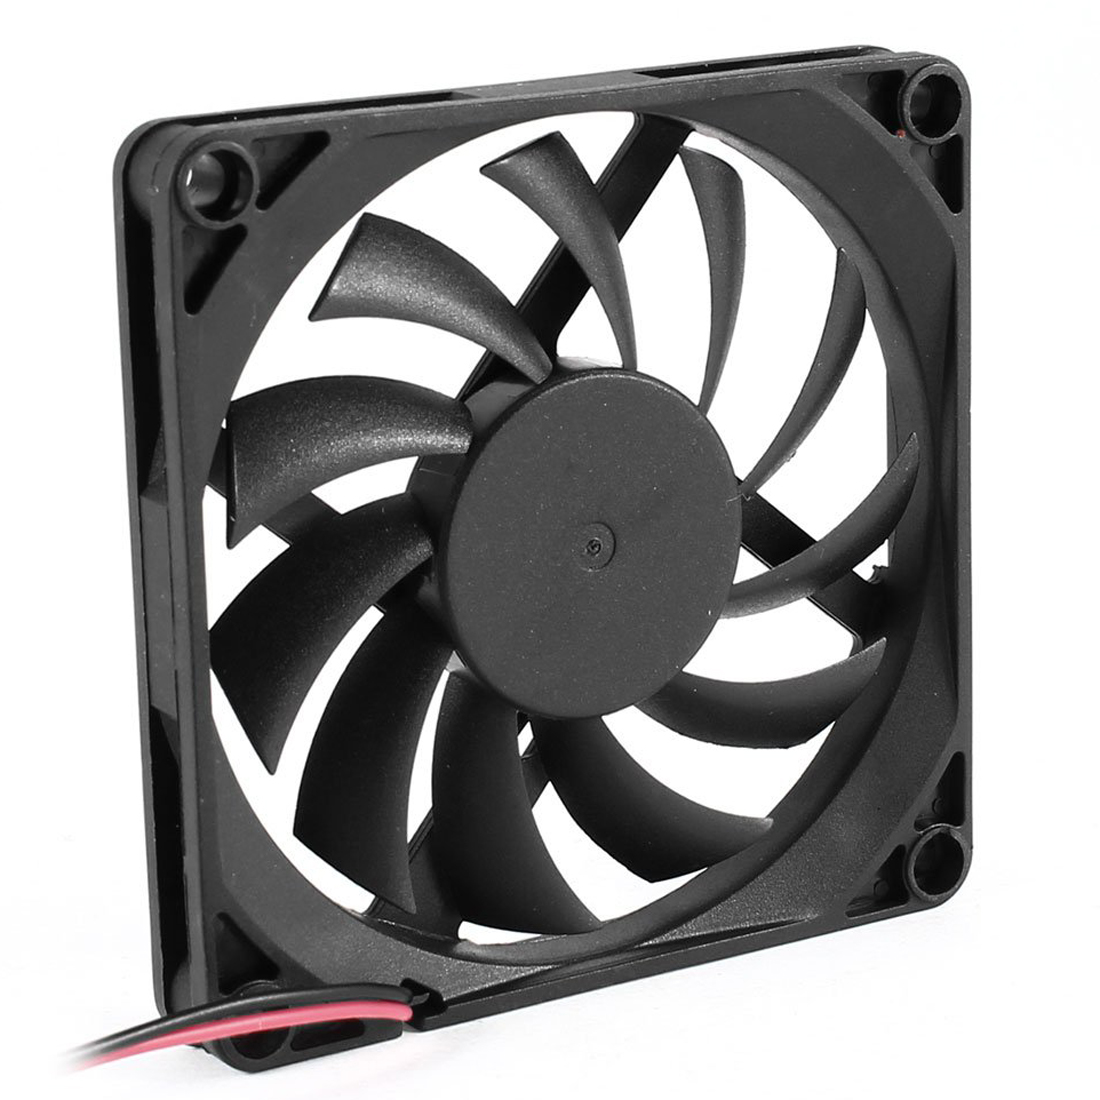 80mm 2 Pin Connector Cooling Fan for Computer Case CPU Cooler Radiator-CAA computer cooler radiator with heatsink heatpipe cooling fan for hd6970 hd6950 grahics card vga cooler